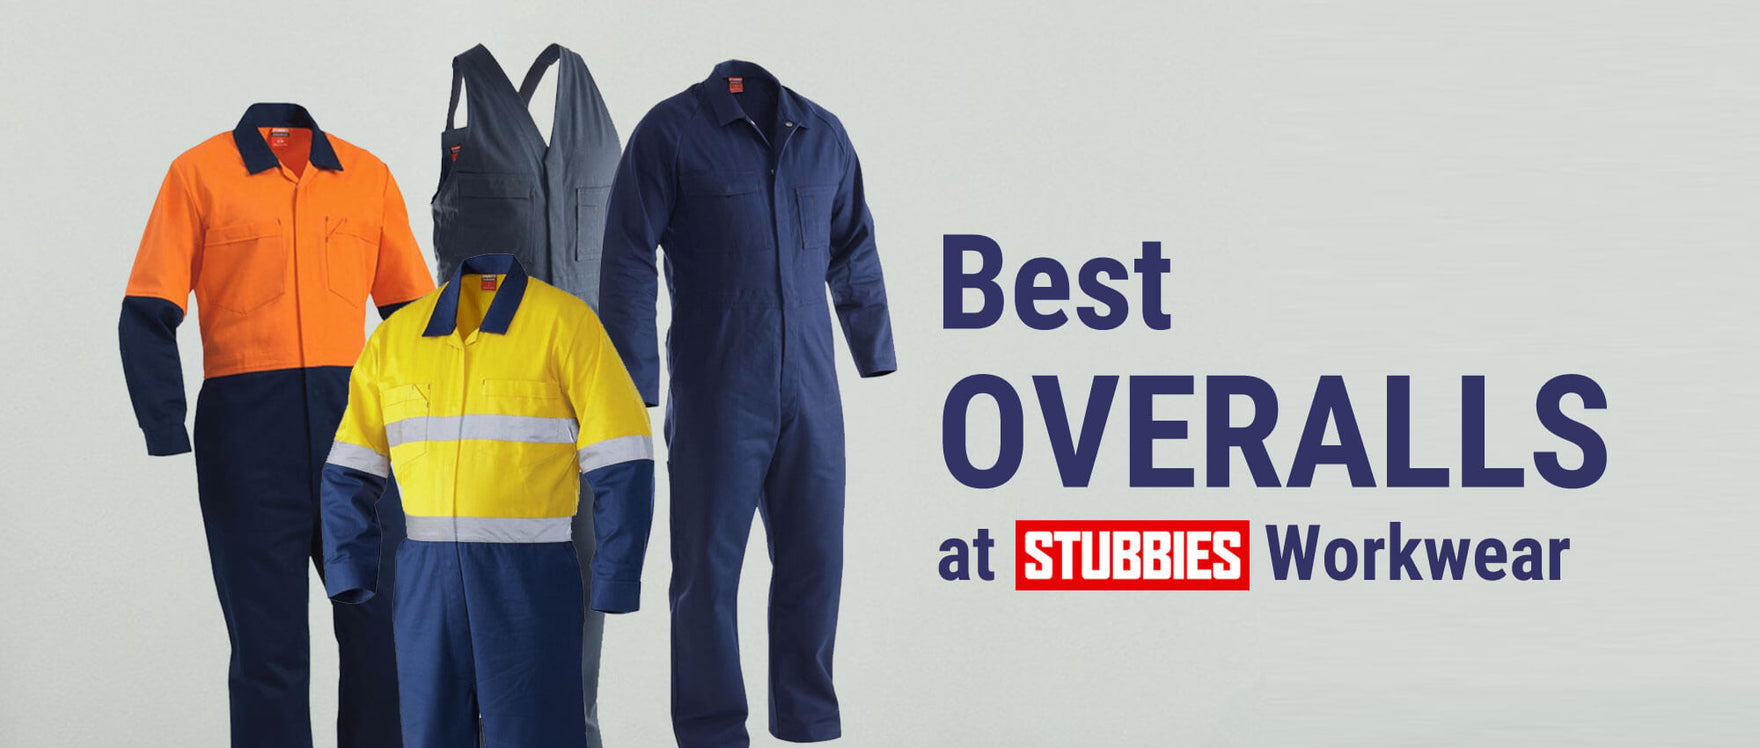 Best Work Overalls at Stubbies Workwear Australia